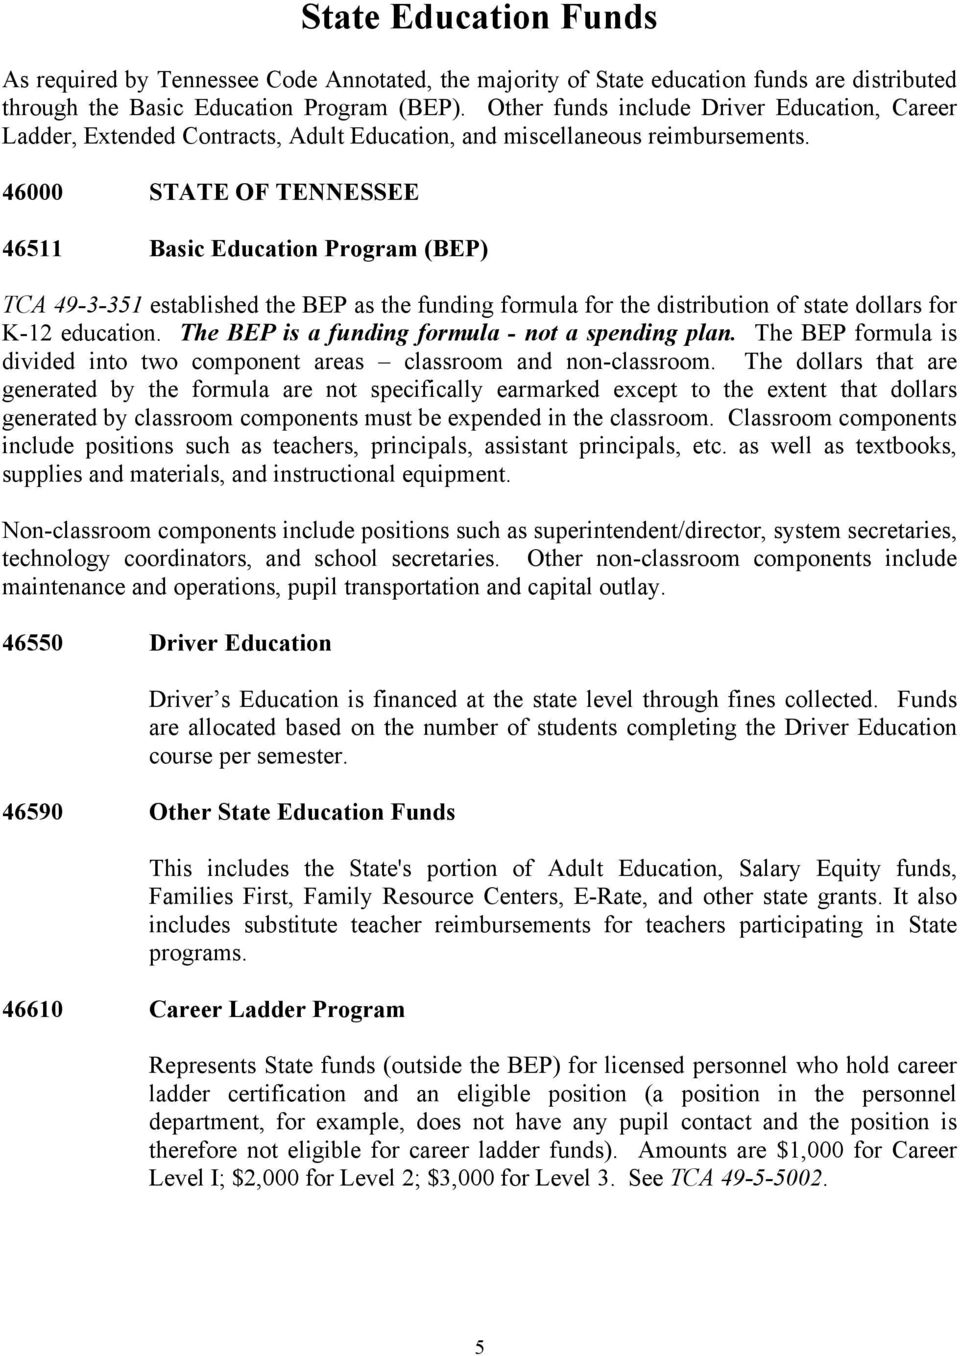 46000 STATE OF TENNESSEE 46511 Basic Education Program (BEP) TCA 49-3-351 established the BEP as the funding formula for the distribution of state dollars for K-12 education.